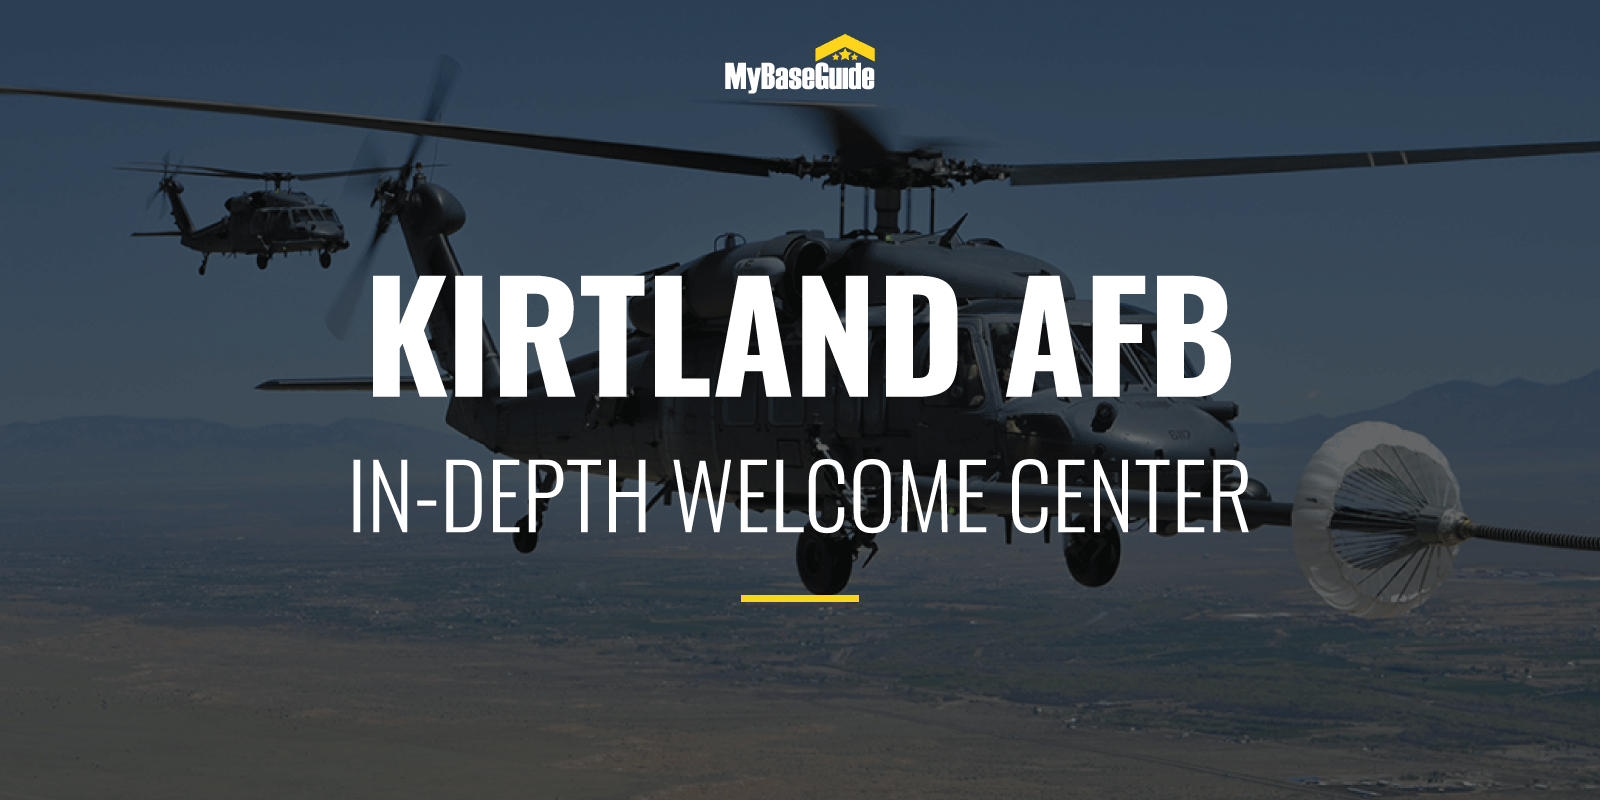 Kirtland Air Force Base: In-Depth Welcome Center